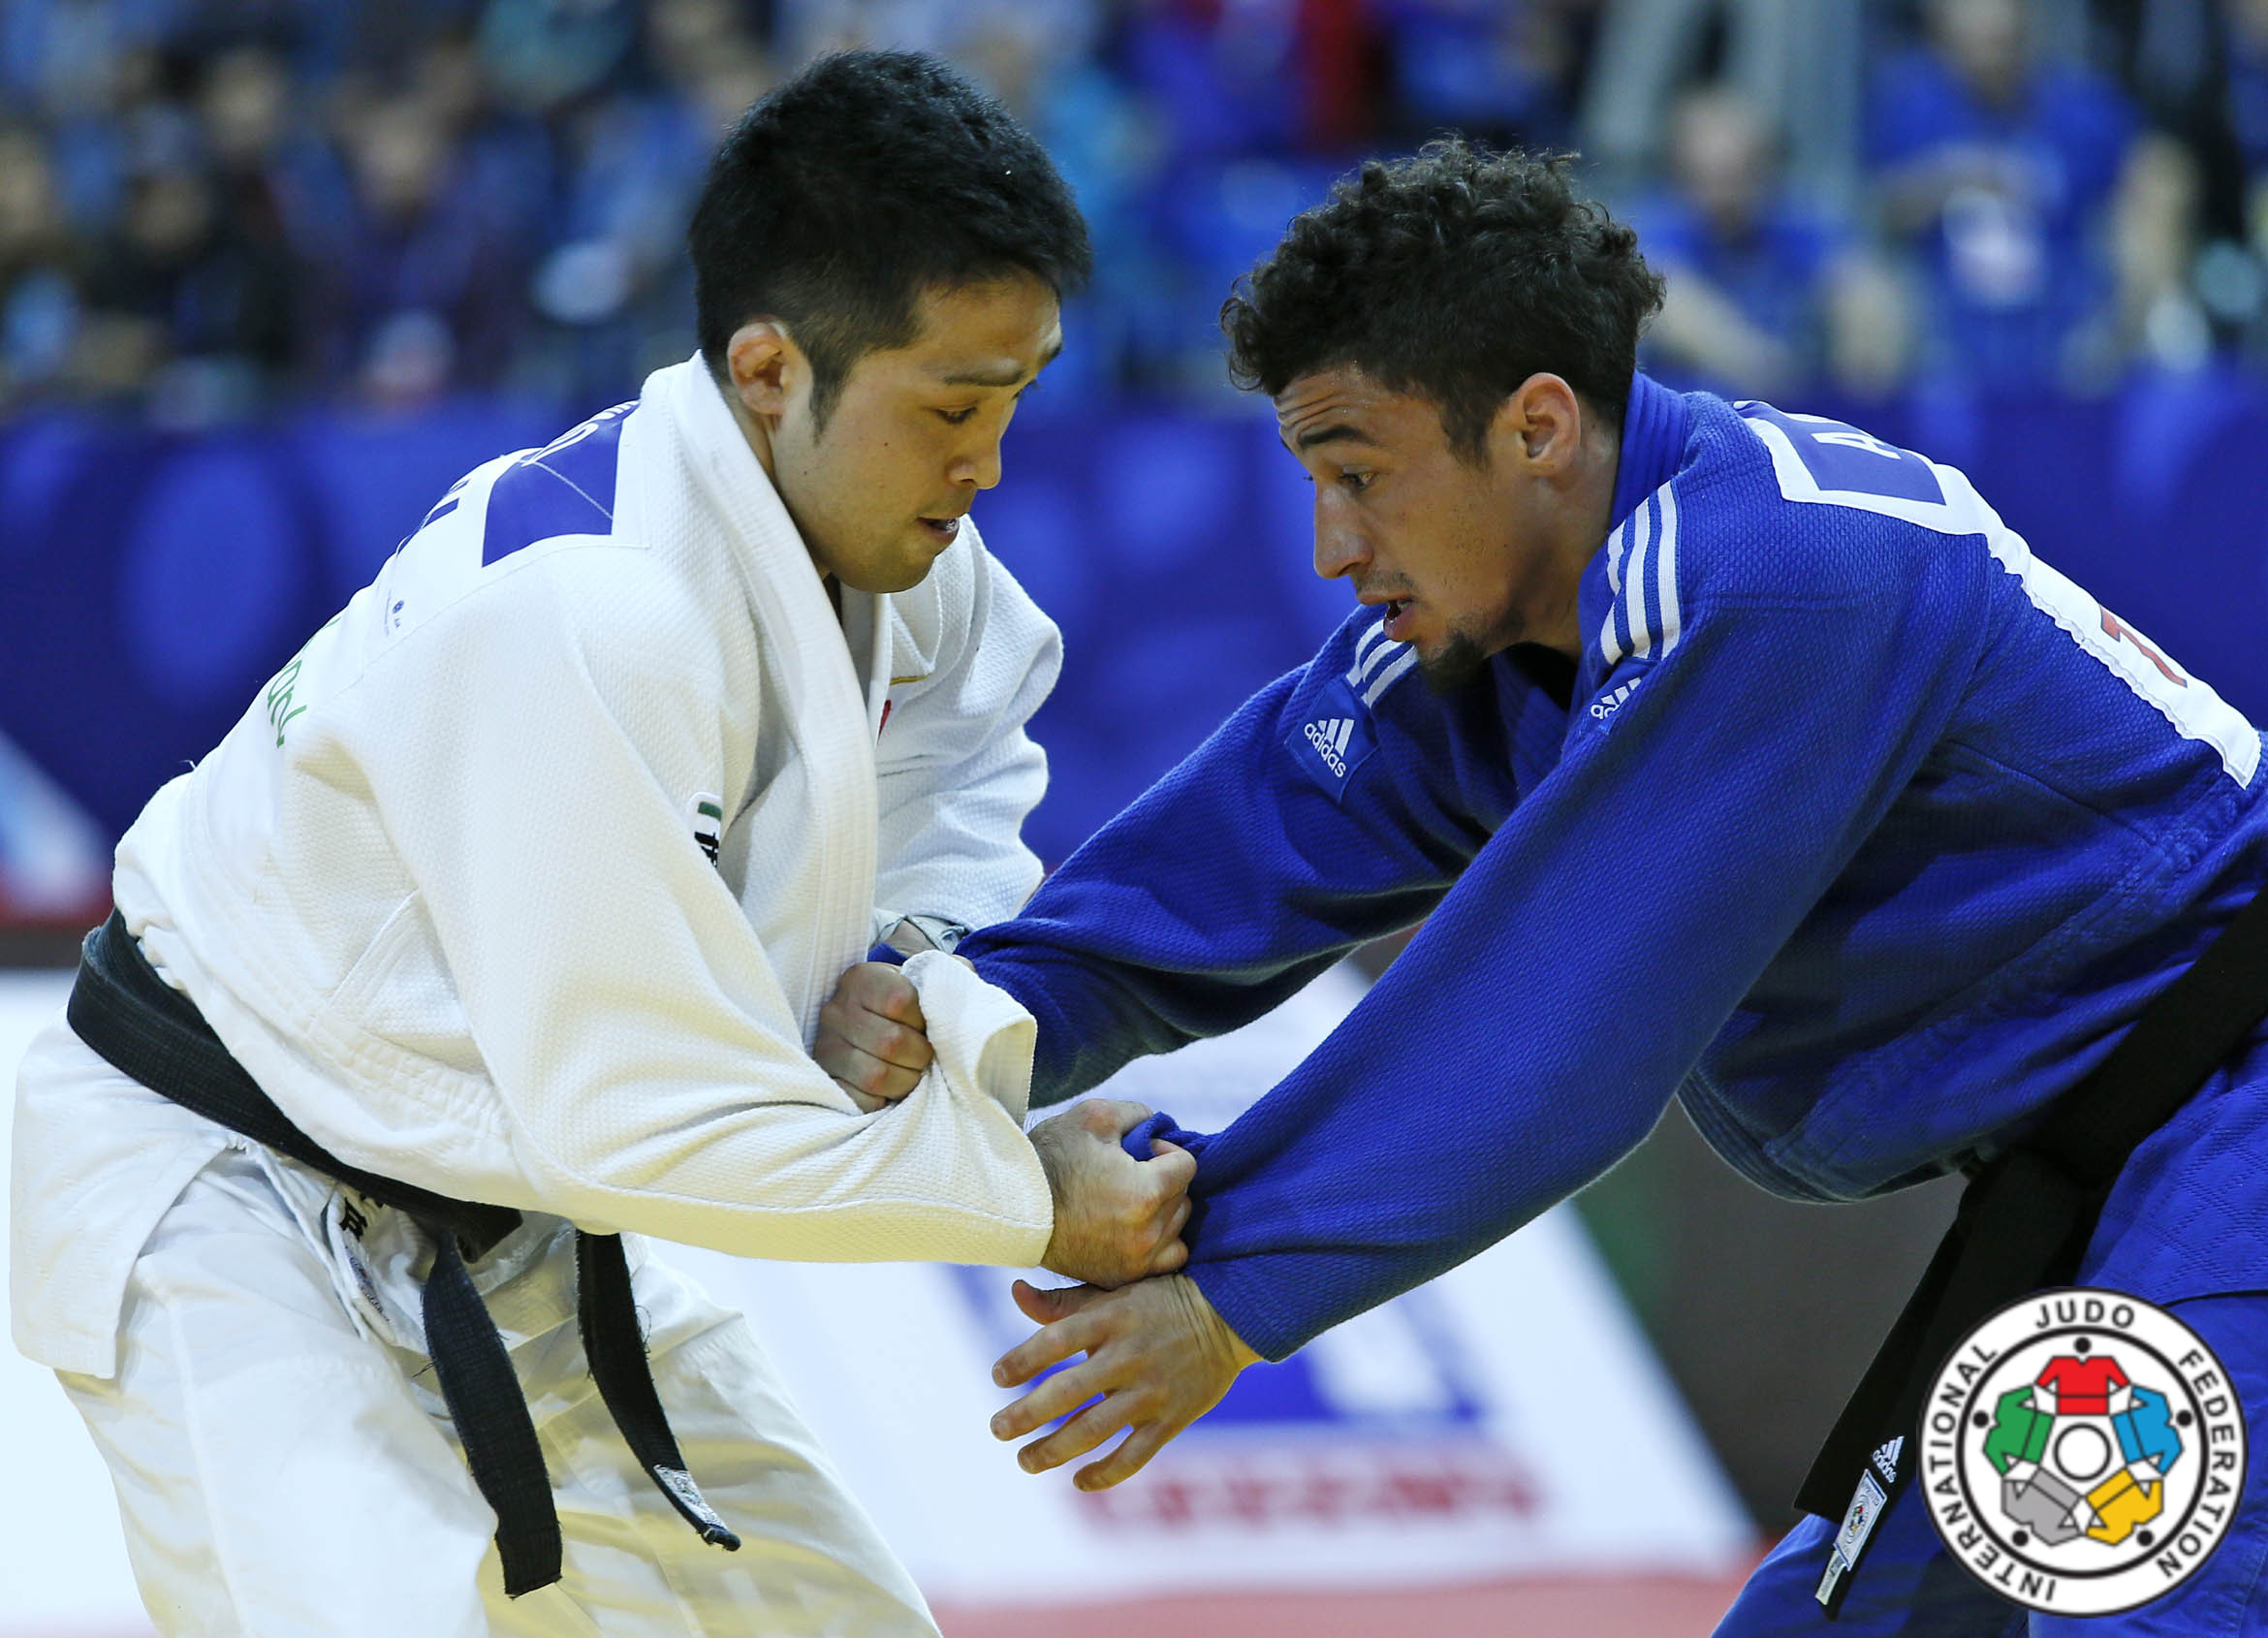 20150718_TymenGS_action_Shinji Kido_Ashley McKenzie (2)